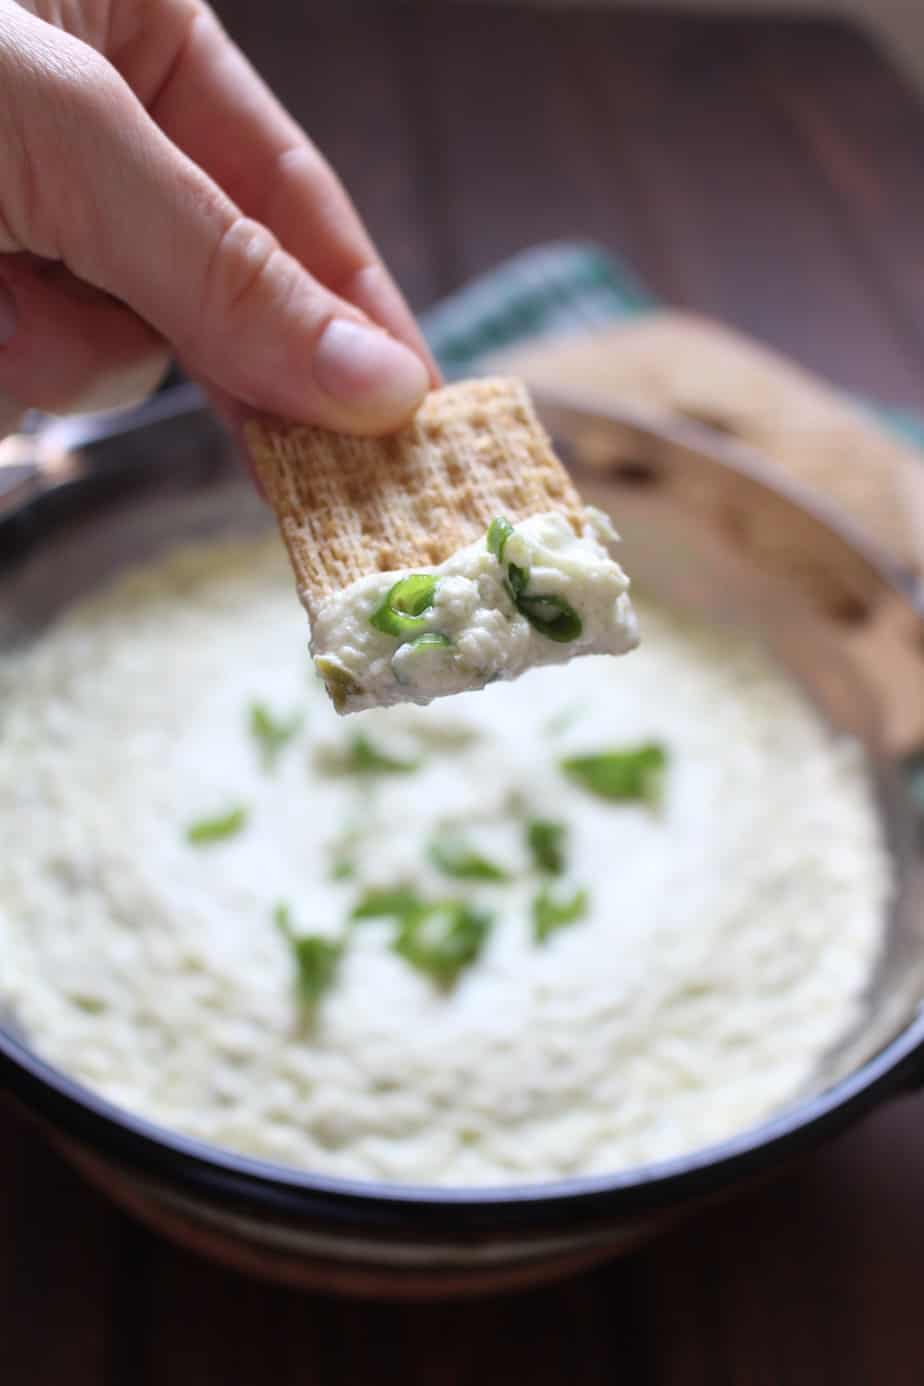 Easy Baked Jalapeño Cream Cheese Dip | Frugal Nutrition